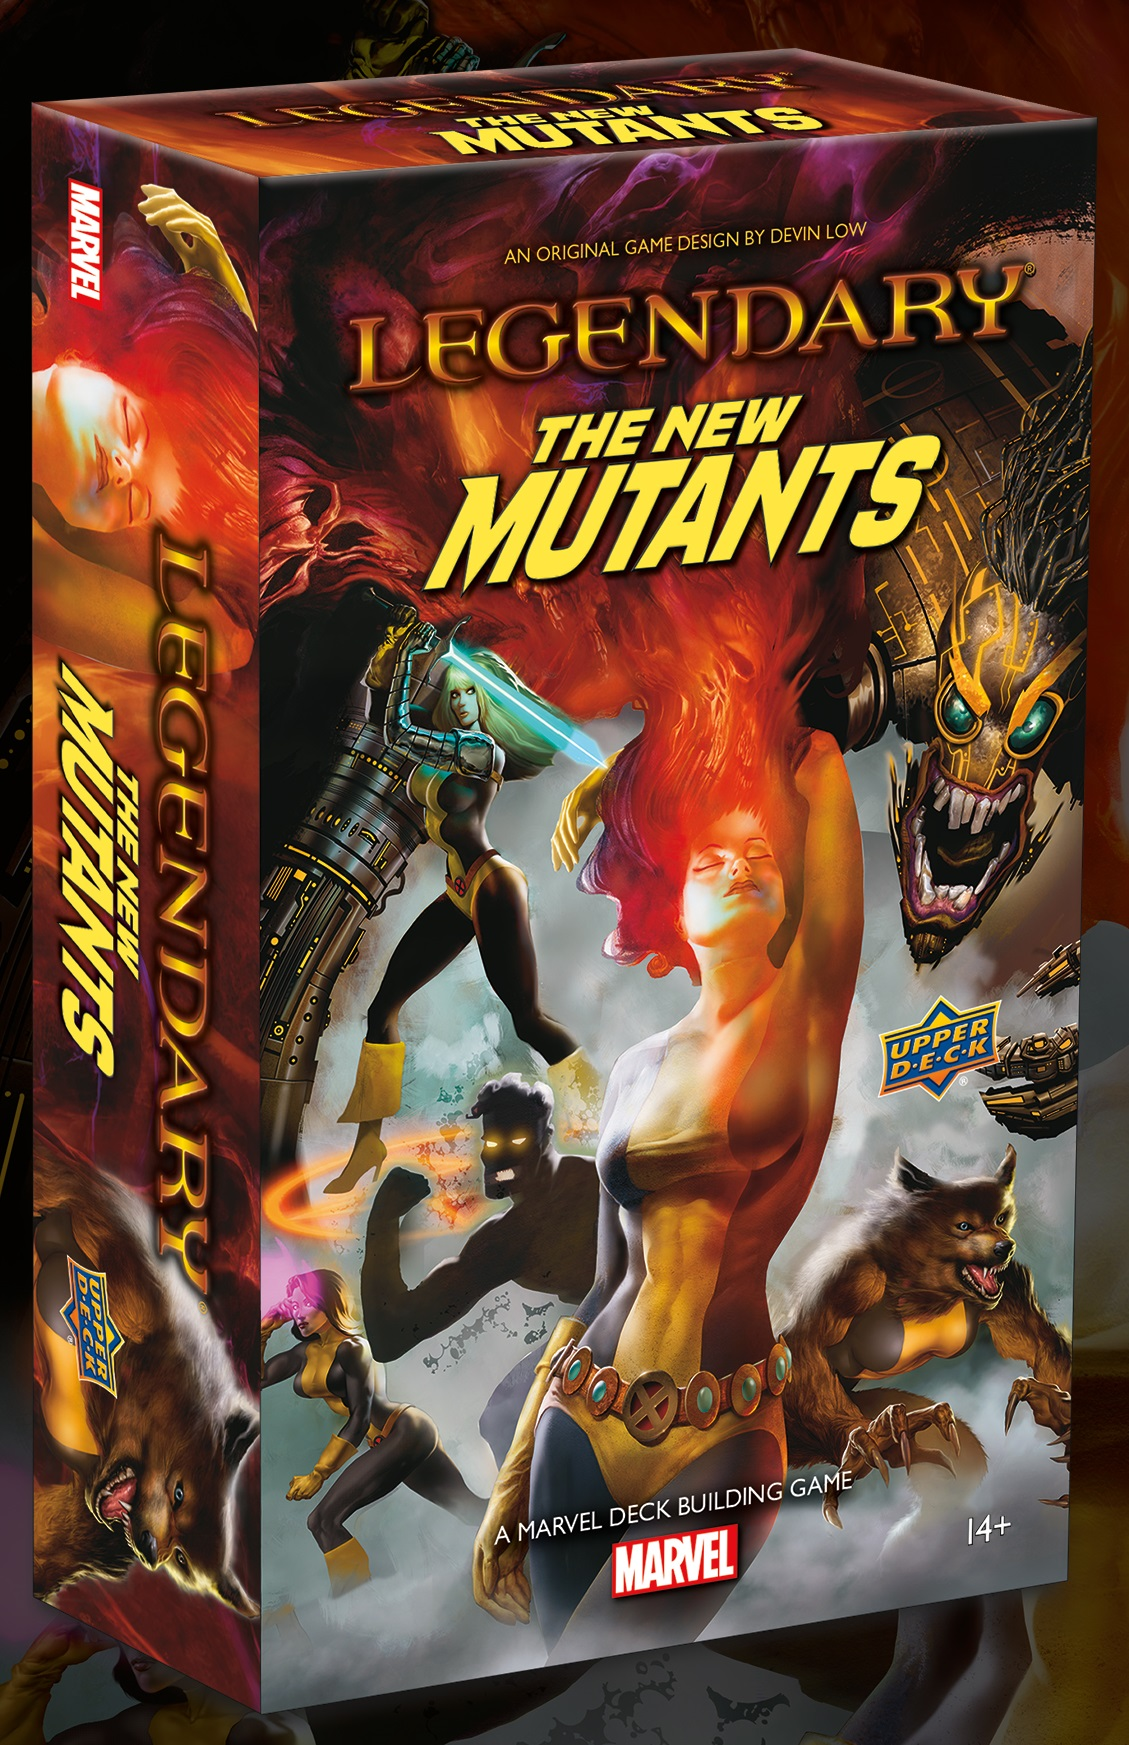 Legendary Dbg: The New Mutants